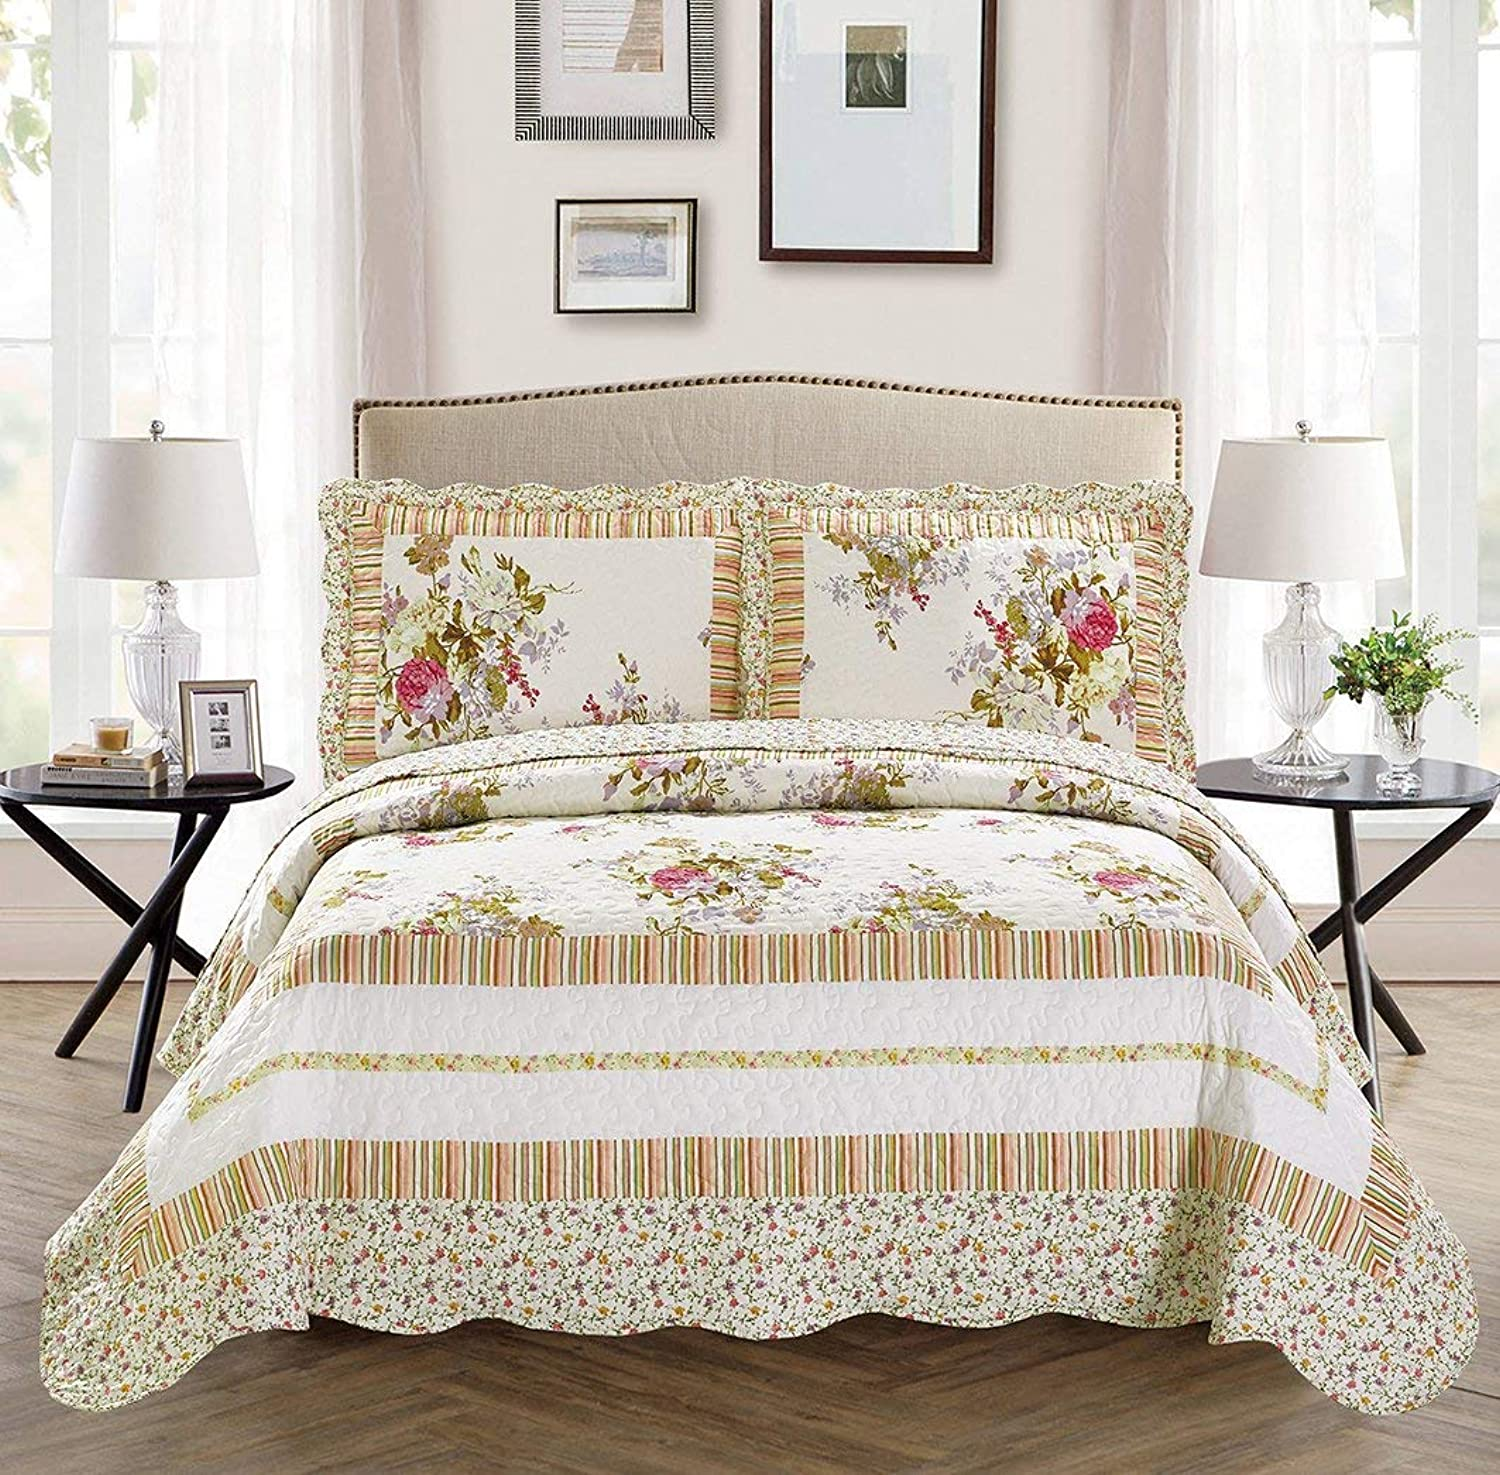 King California King 3pc Over Size Quilted Bedspread Set Reversible Floral White Lavender Green Pink